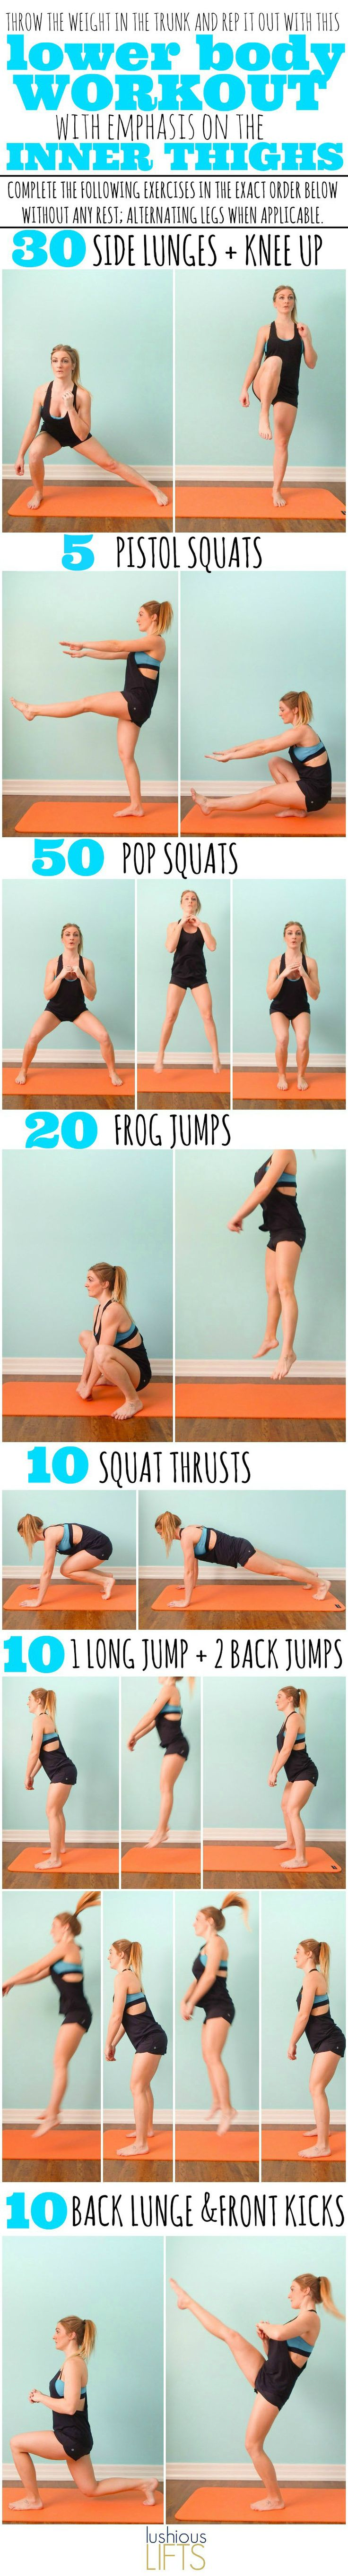 Lower Body Workout with emphasis on the Inner Thighs. The bodyweight workout that will make you feel strong and accomplished!